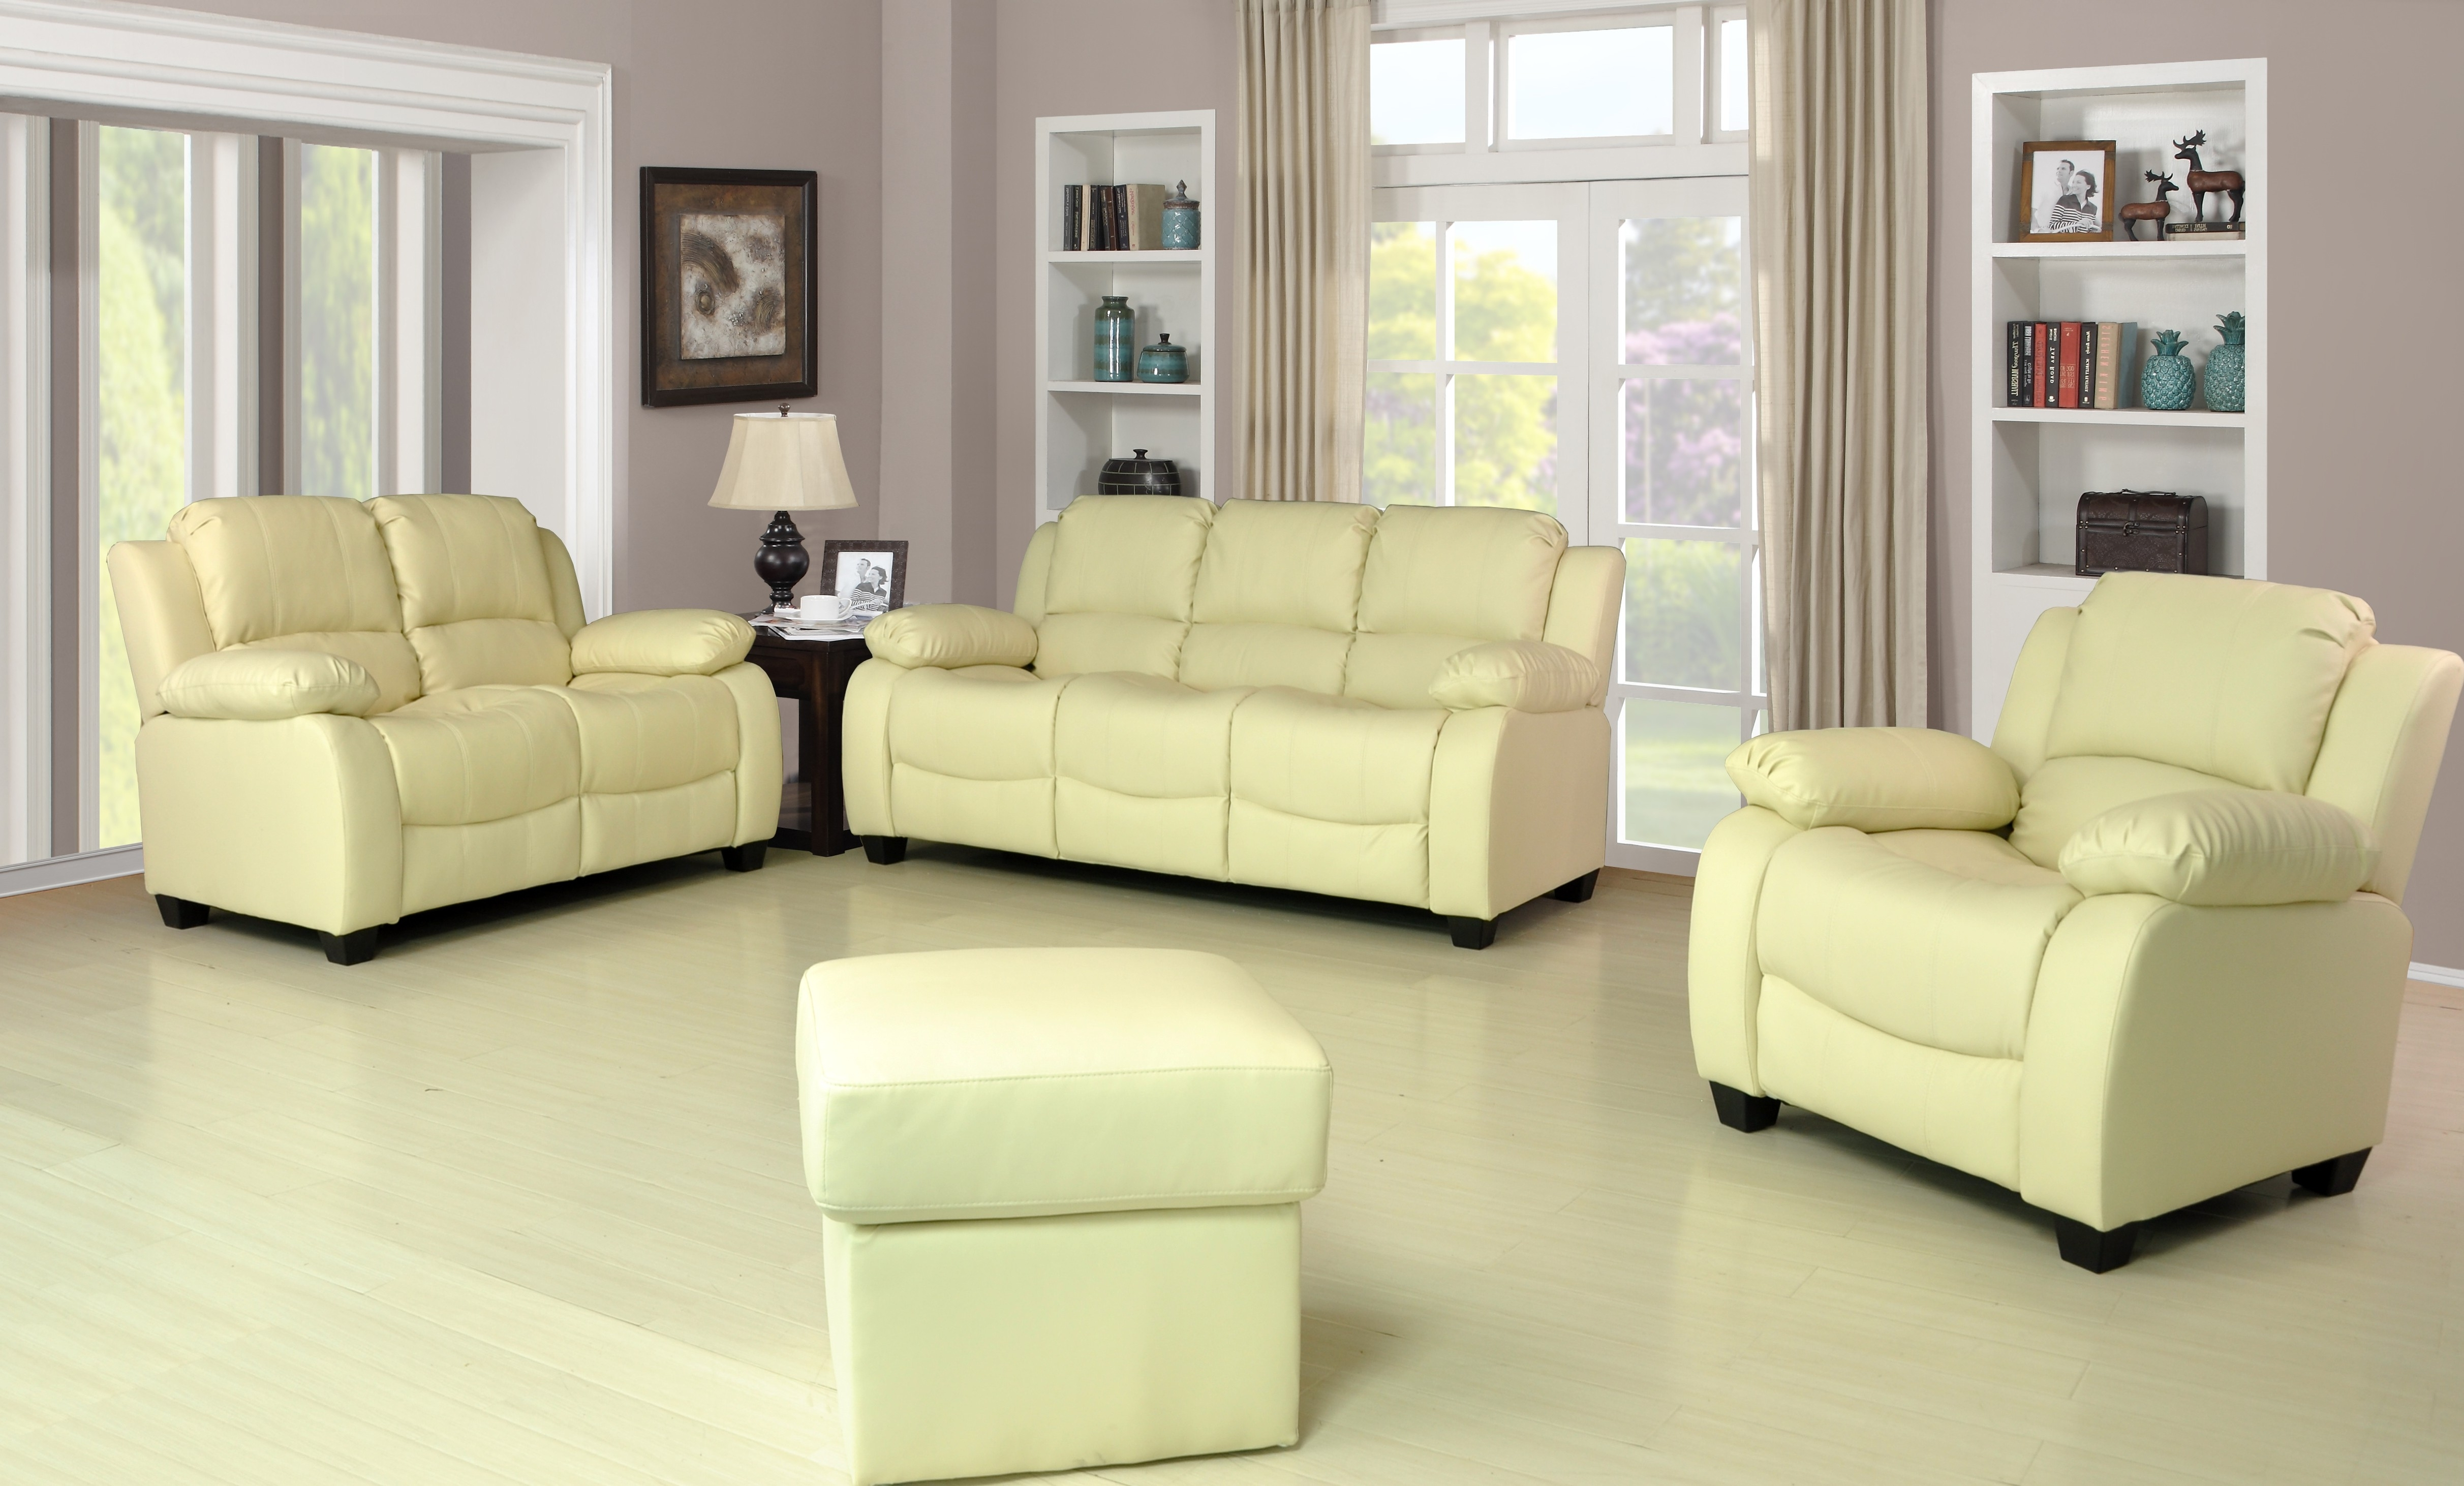 Best And Newest Cream Leather Sofa Set Great Aesthetic Brown Withed And Cushions Pertaining To Cream Colored Sofas (View 16 of 20)